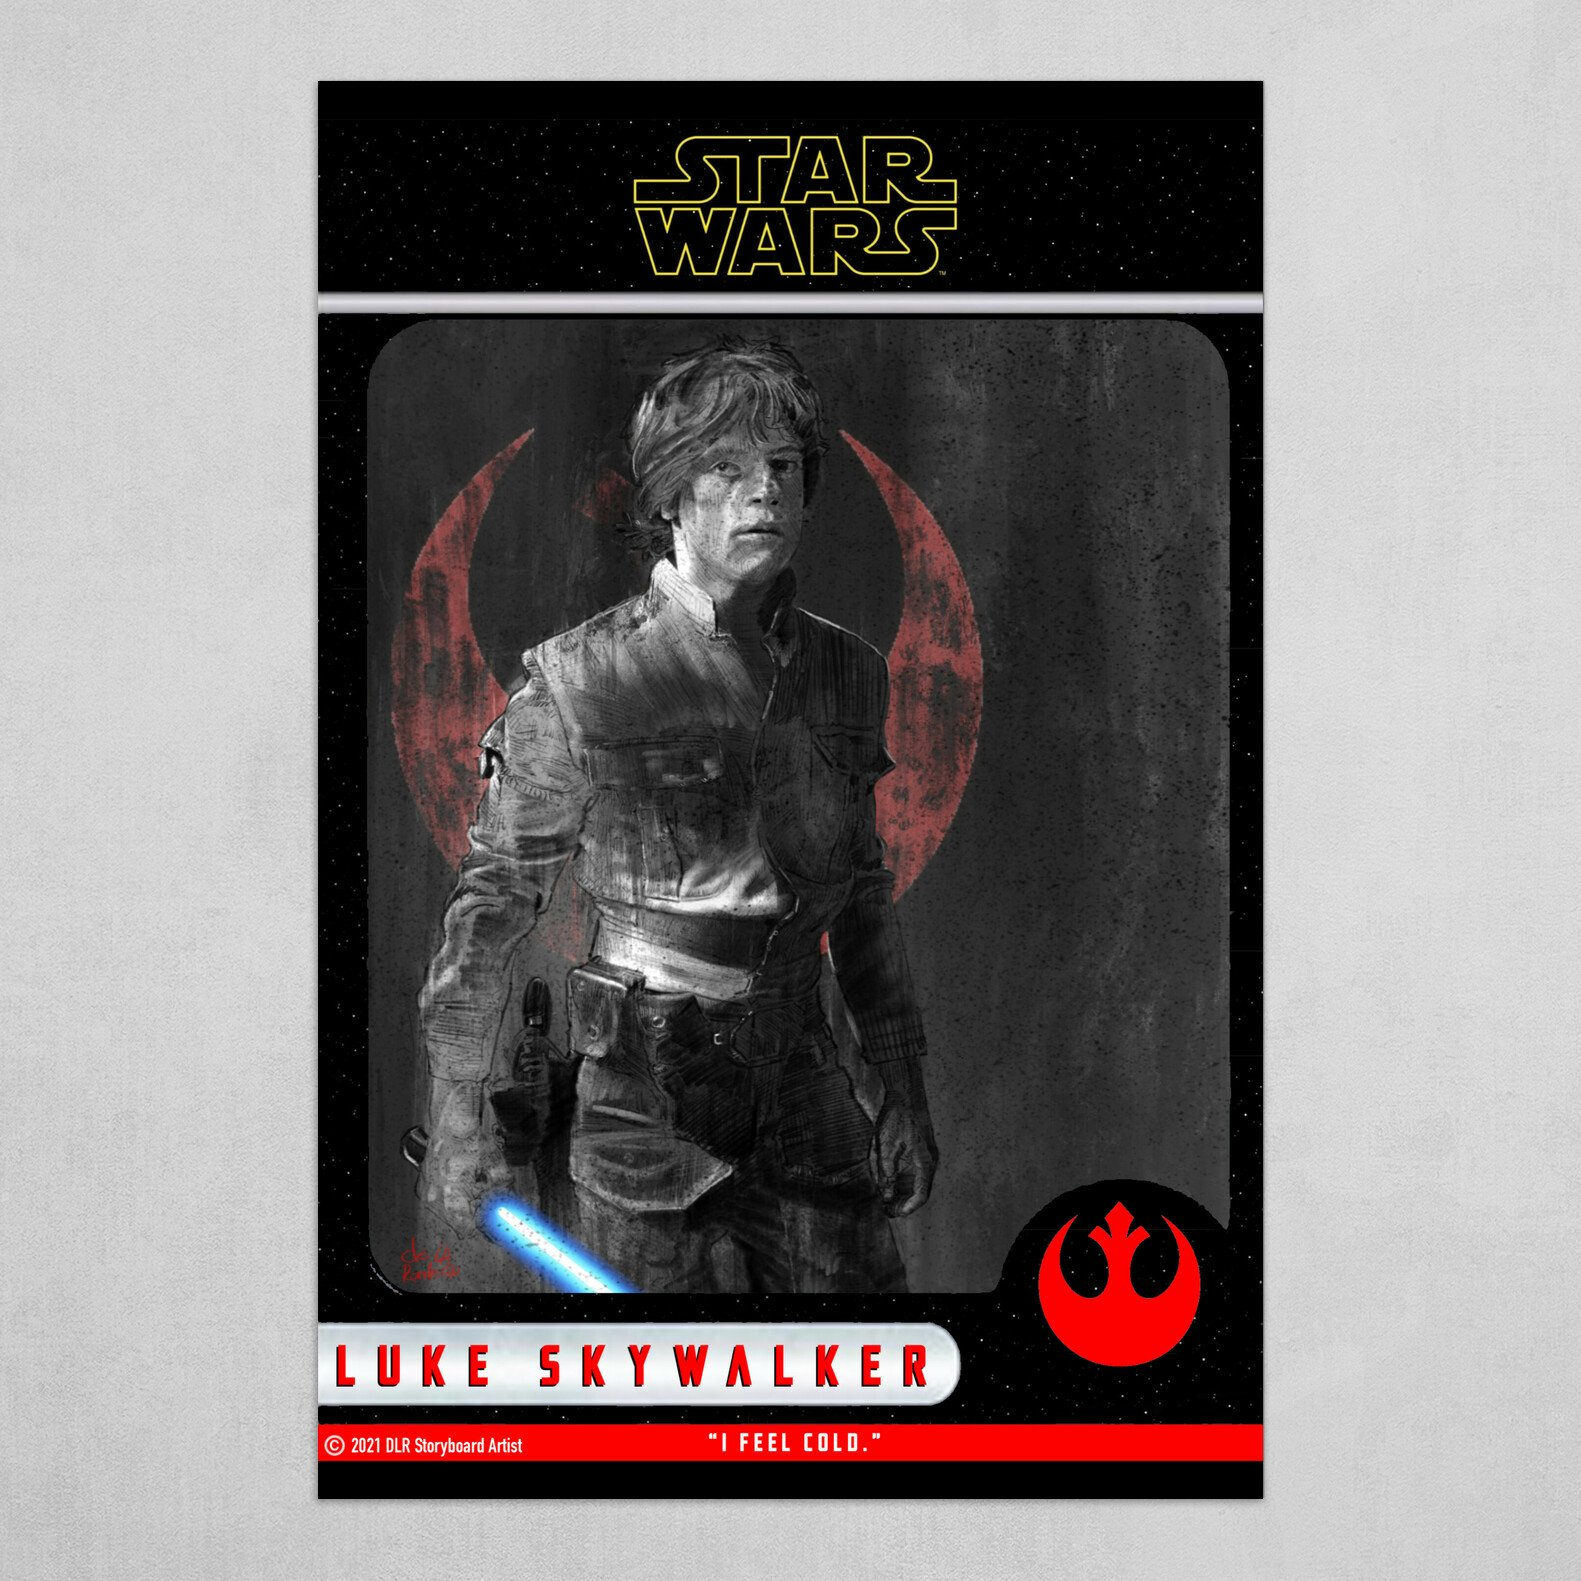 Luke Skywalker Poster (Trading Card Style) B&W with Red, Blue and Yellow.